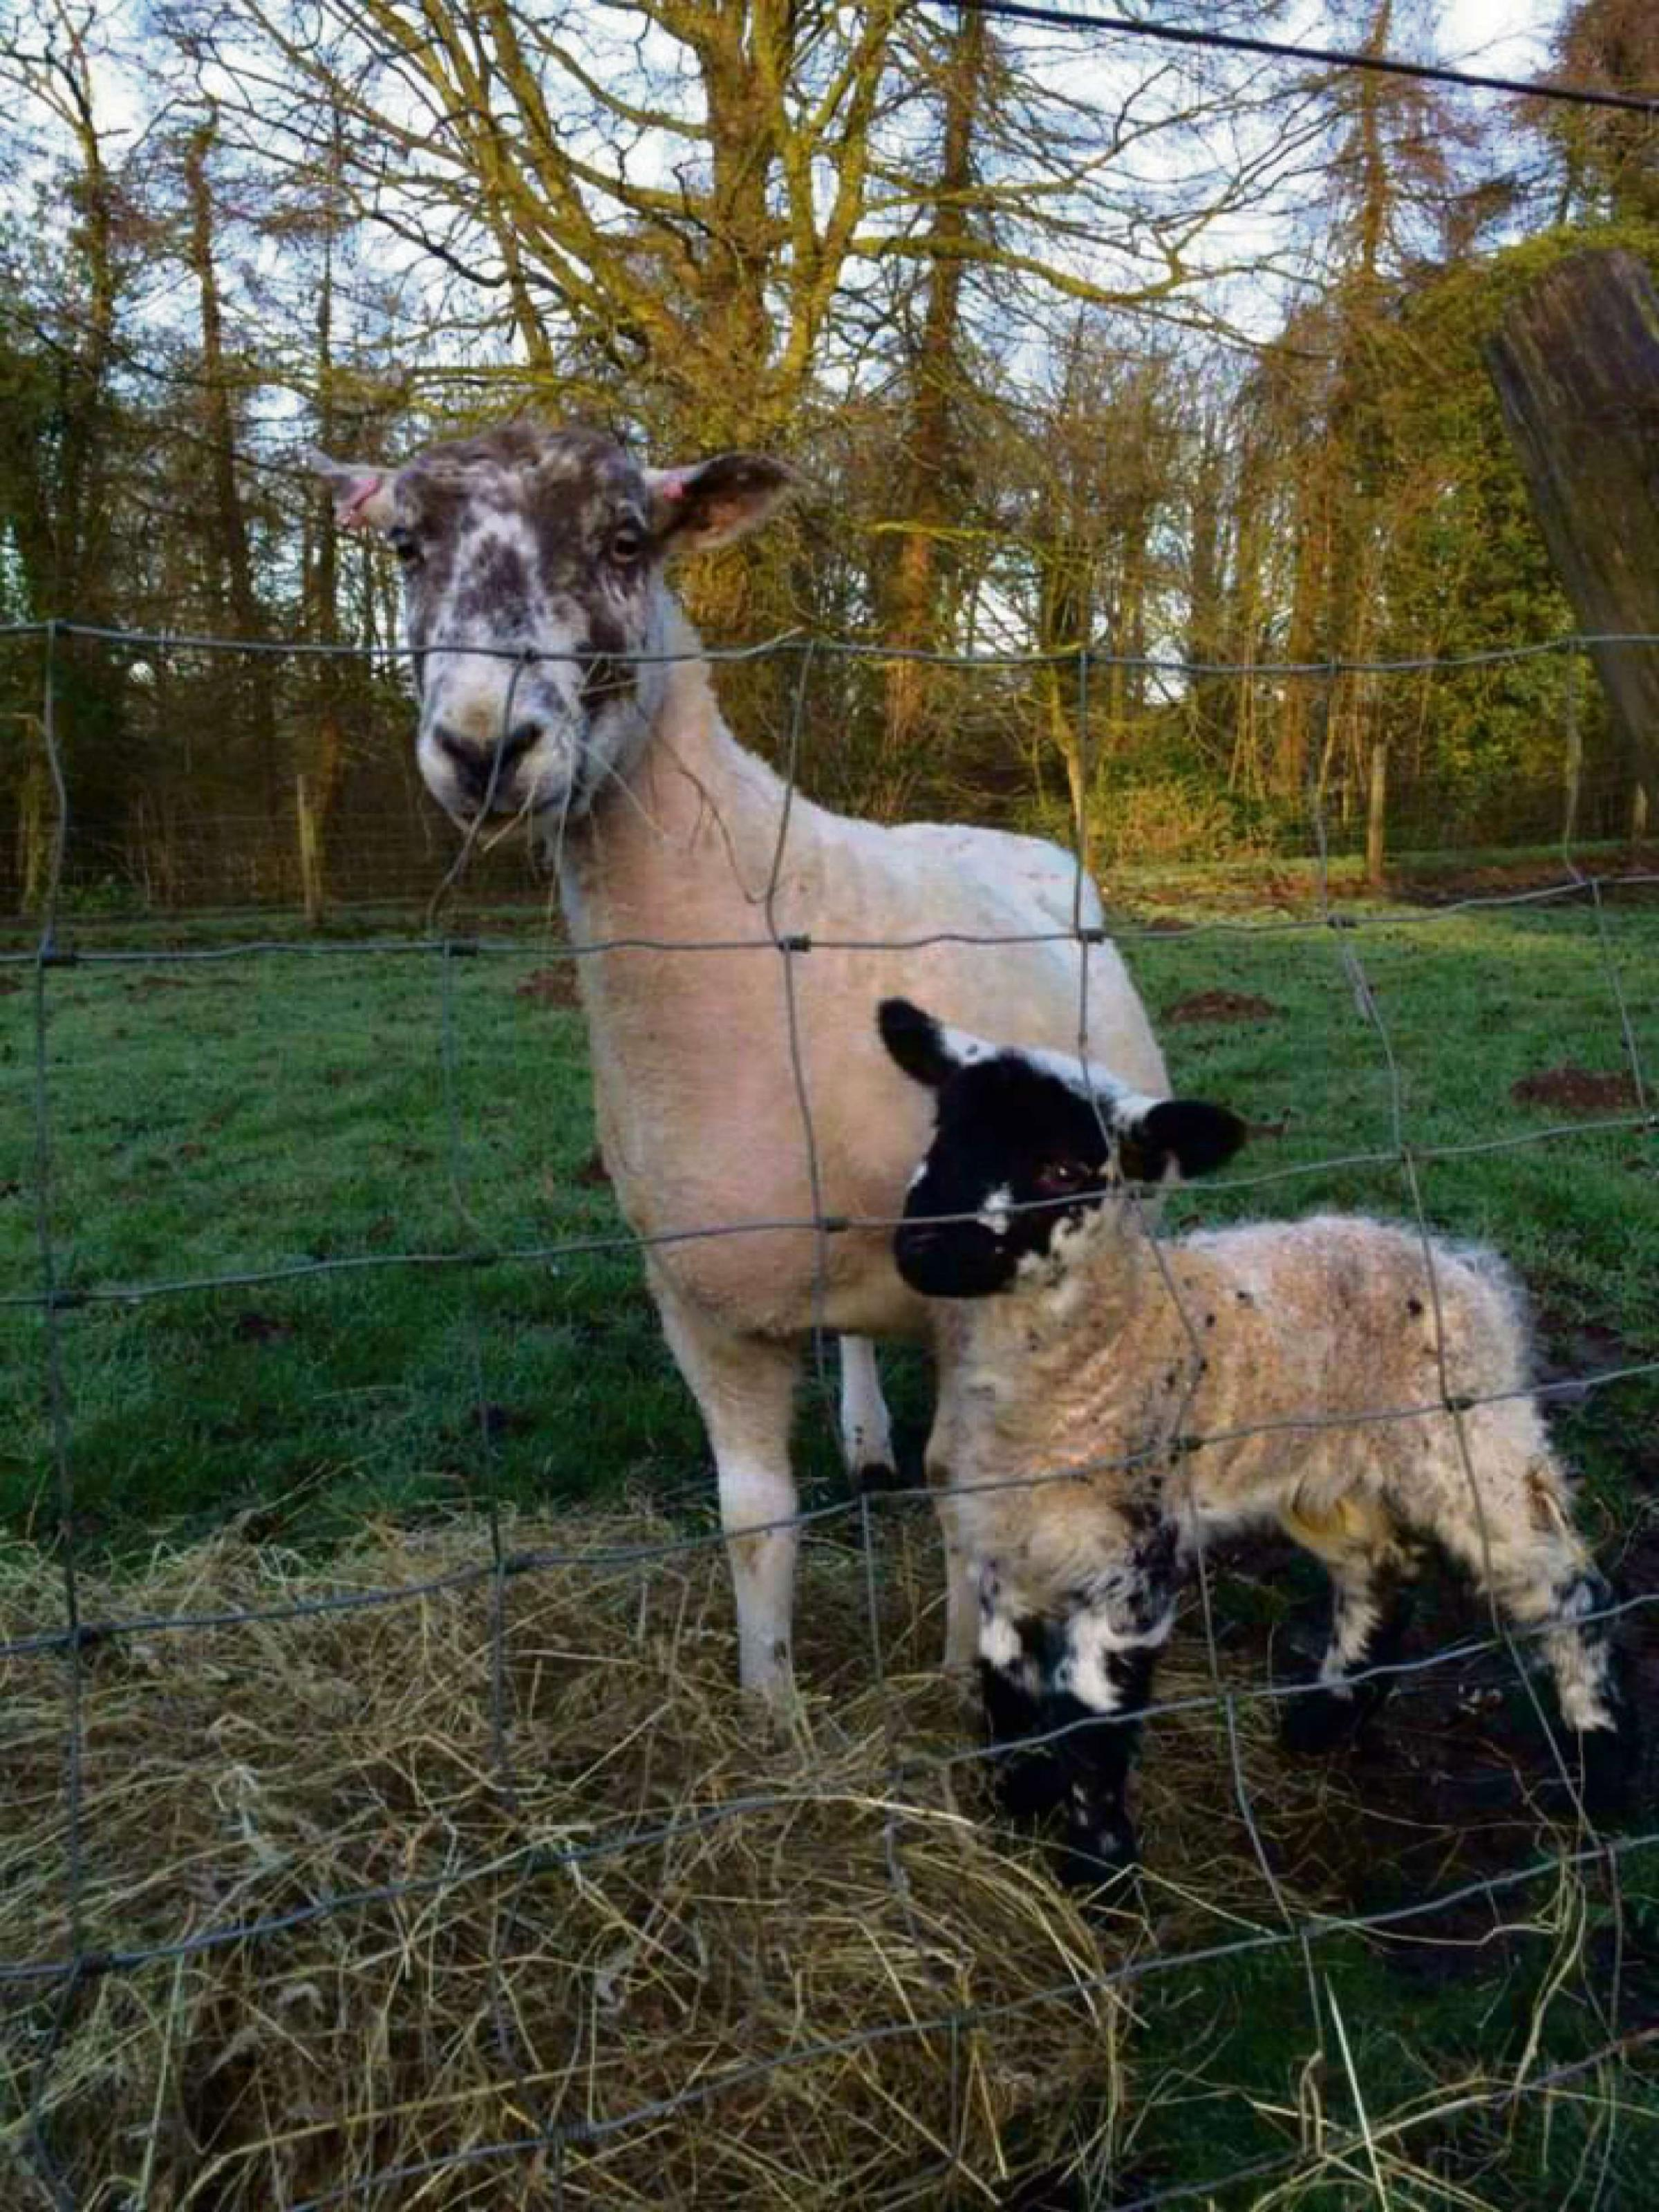 The first lamb to be born at Overbury Farms arrived on February 21 - four weeks early.